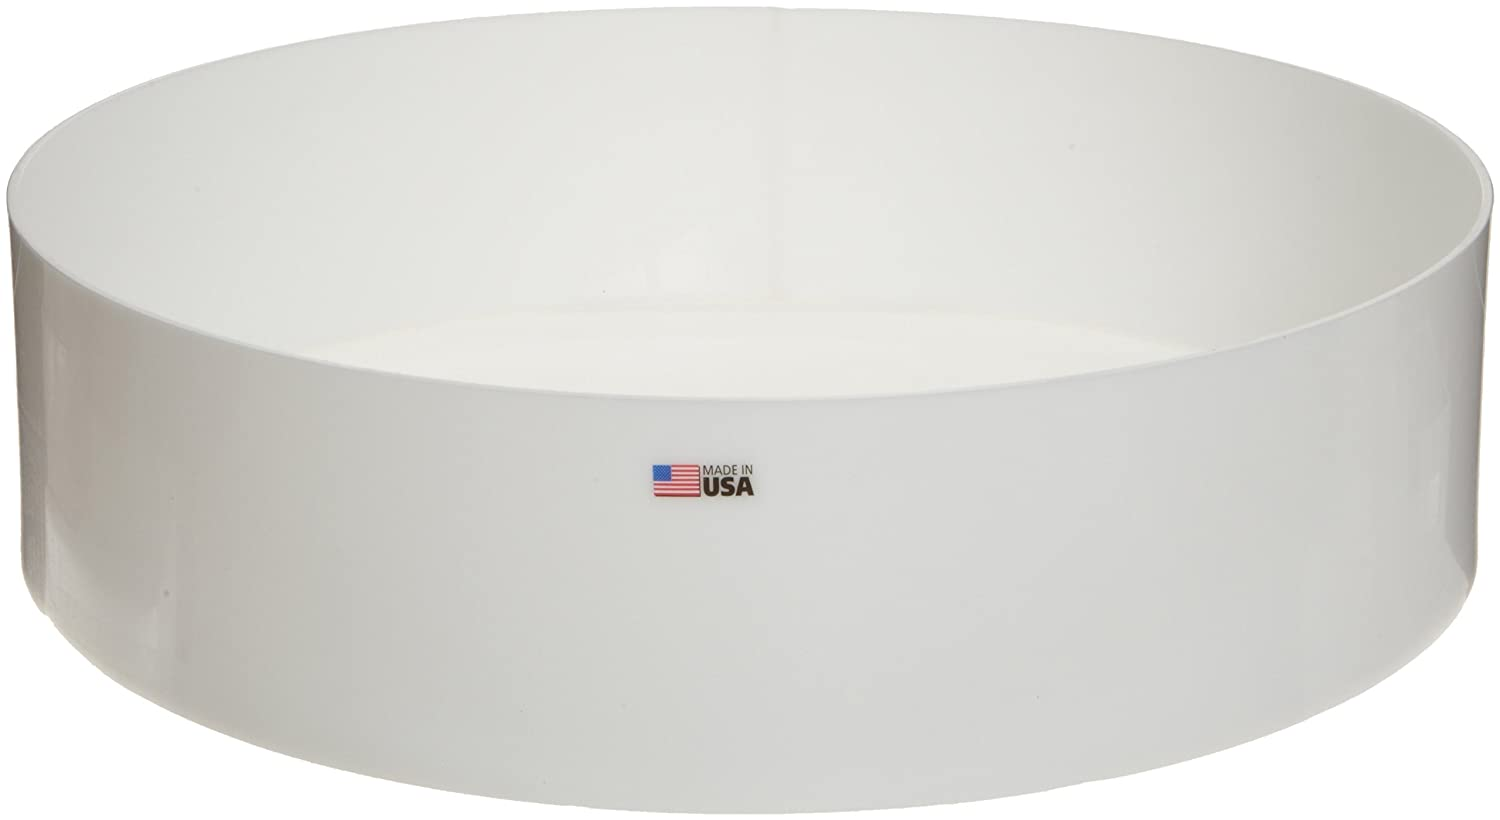 Dynalon 109834 Polyethylene (HDPE) Heavy Duty Round Lab Tray, 24' Diameter x 6' Depth 24 Diameter x 6 Depth DYNCR 109834